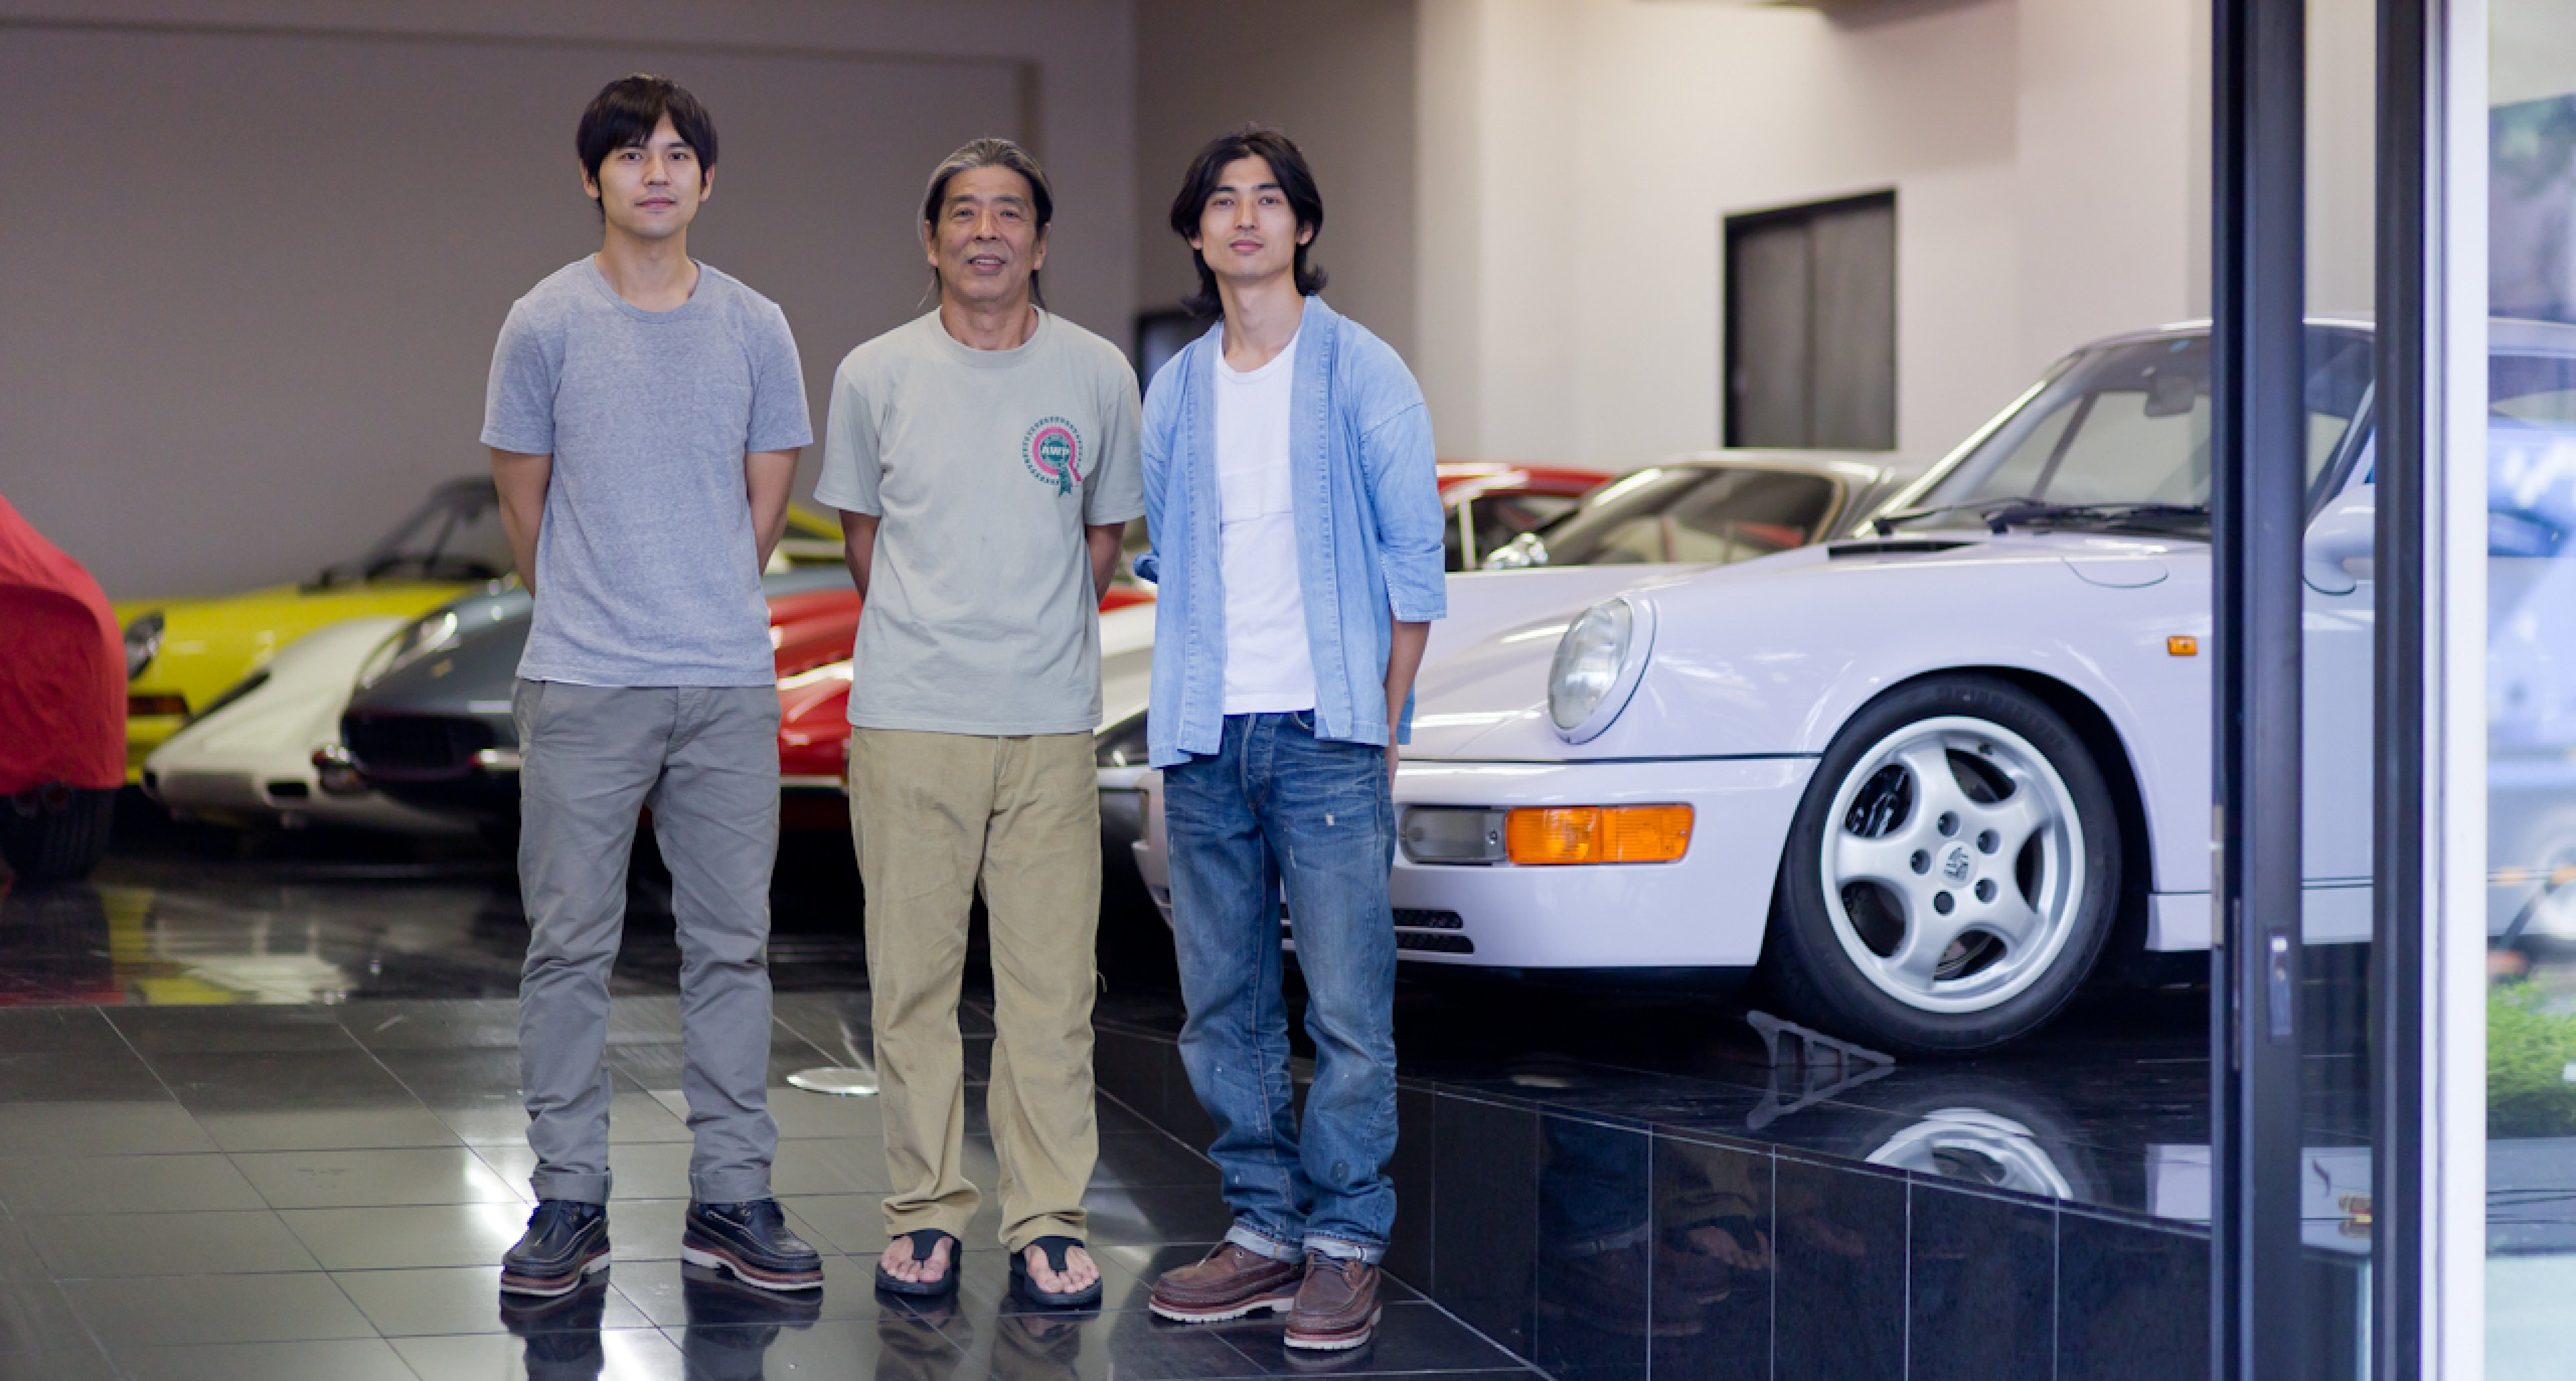 Natio-san with his sons, So and Kei.